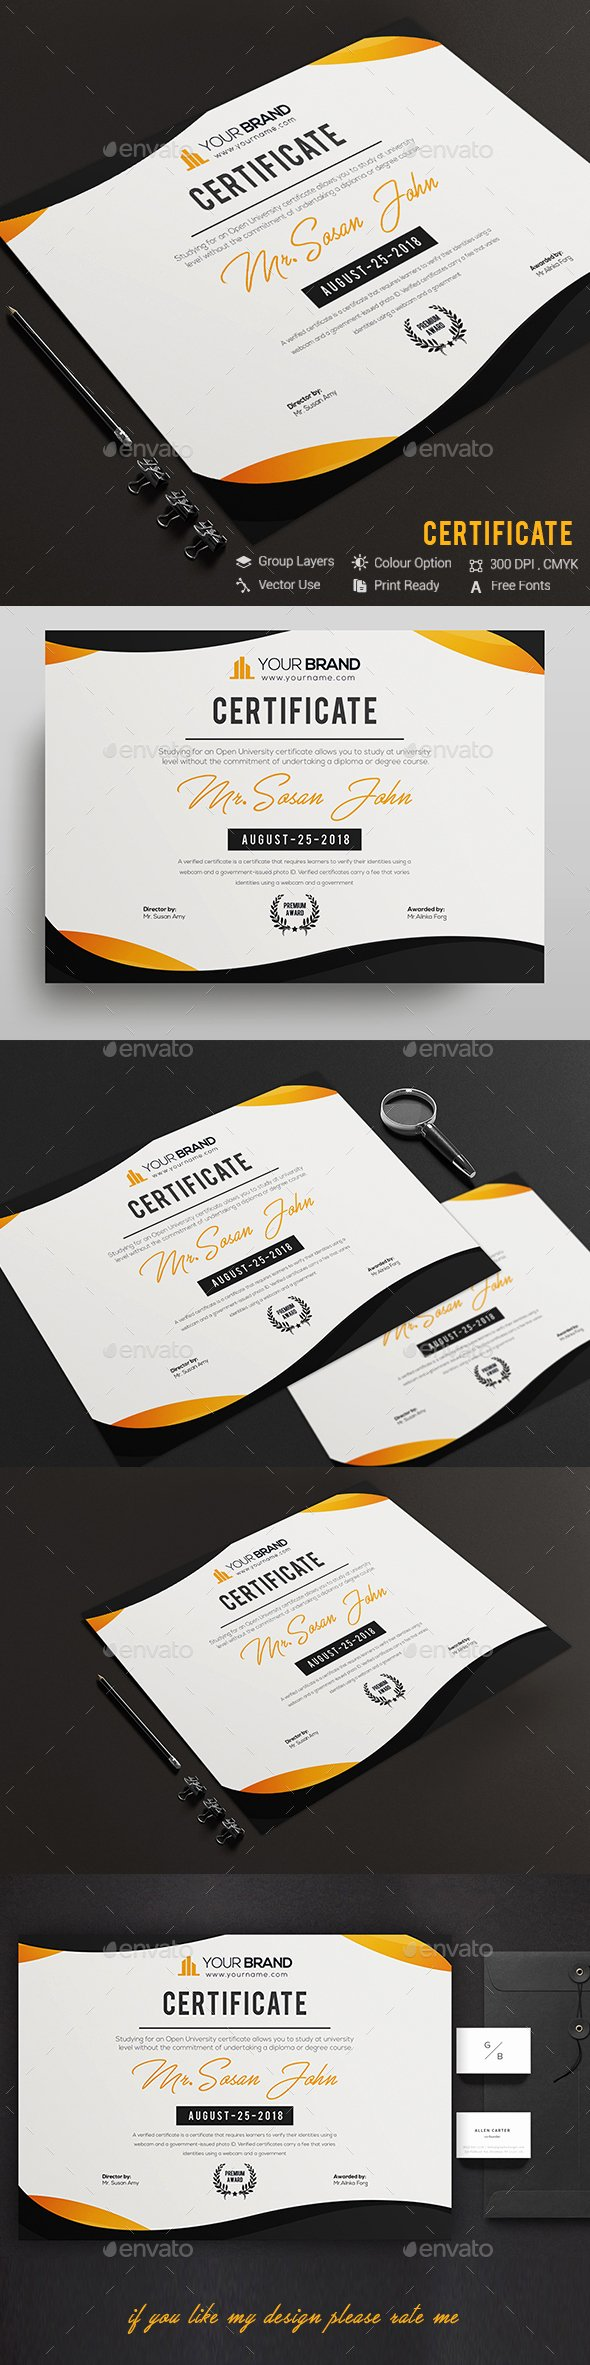 Size Of Certificate Paper Lovely Certificate Certificate Template Fully Clean Certificate